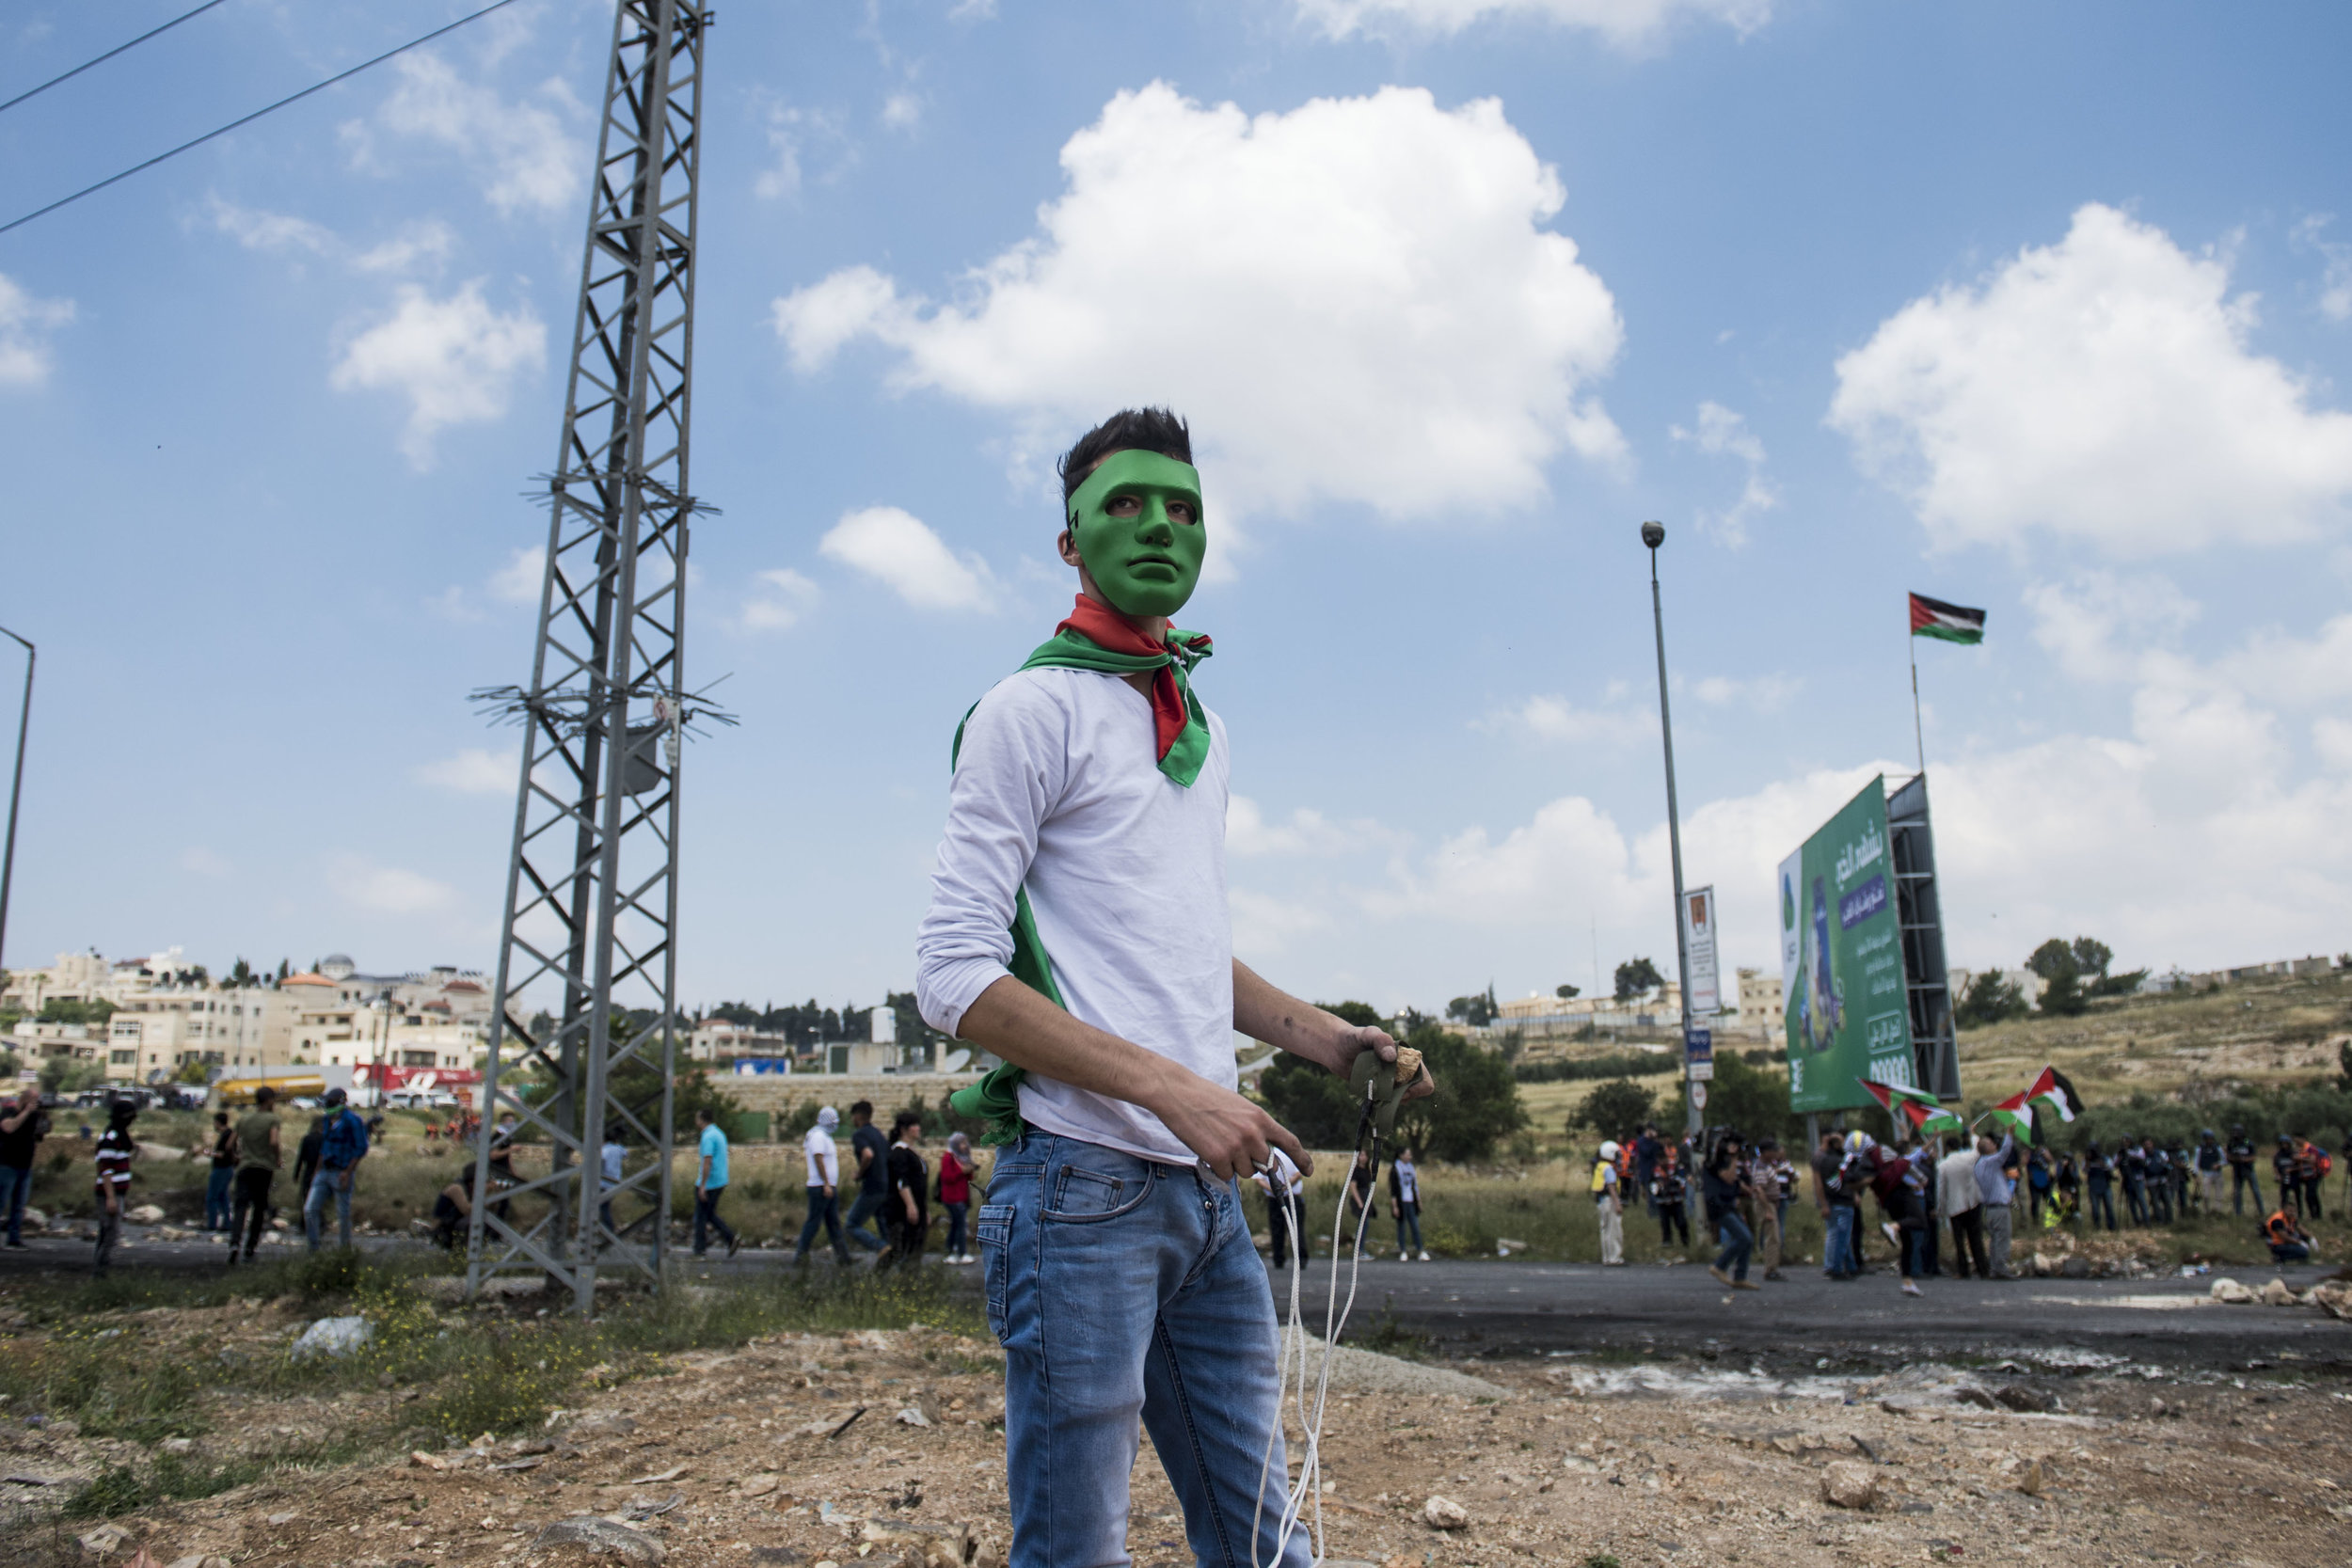 0515_2018_Hatcher_NakbaProtests_043.JPG